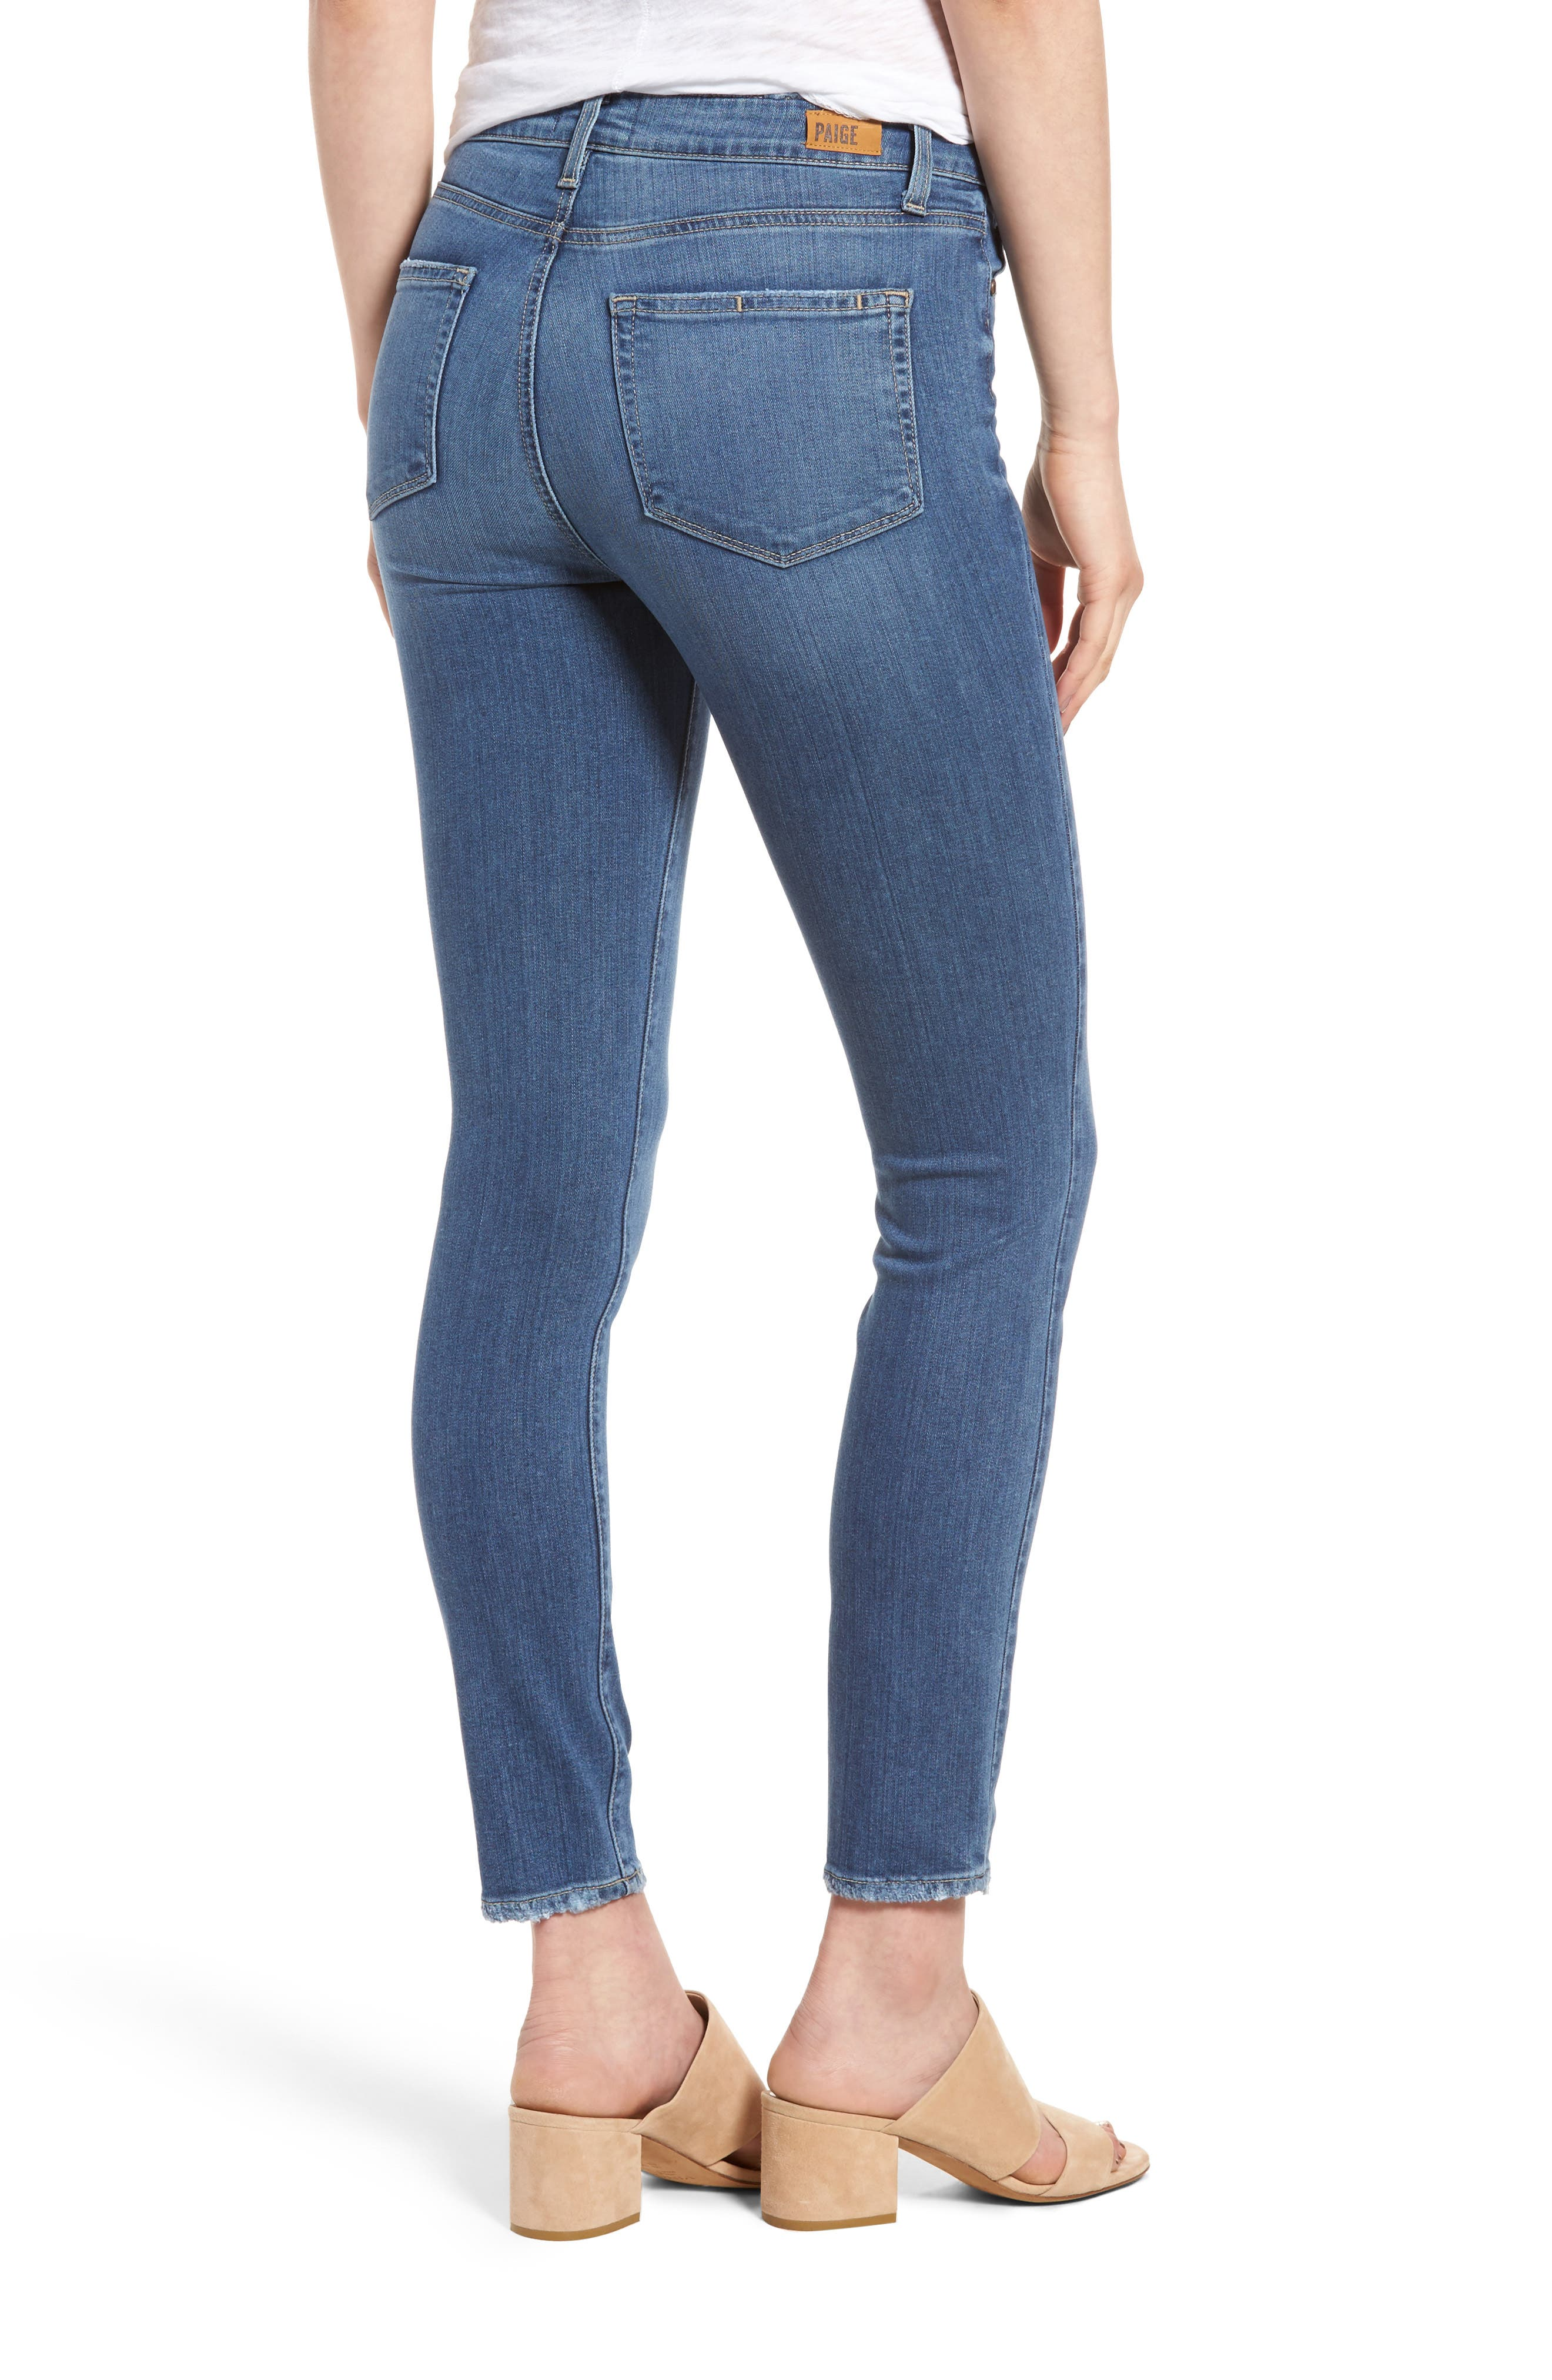 Hoxton High Waist Ankle Skinny Jeans,                             Alternate thumbnail 2, color,                             Roman